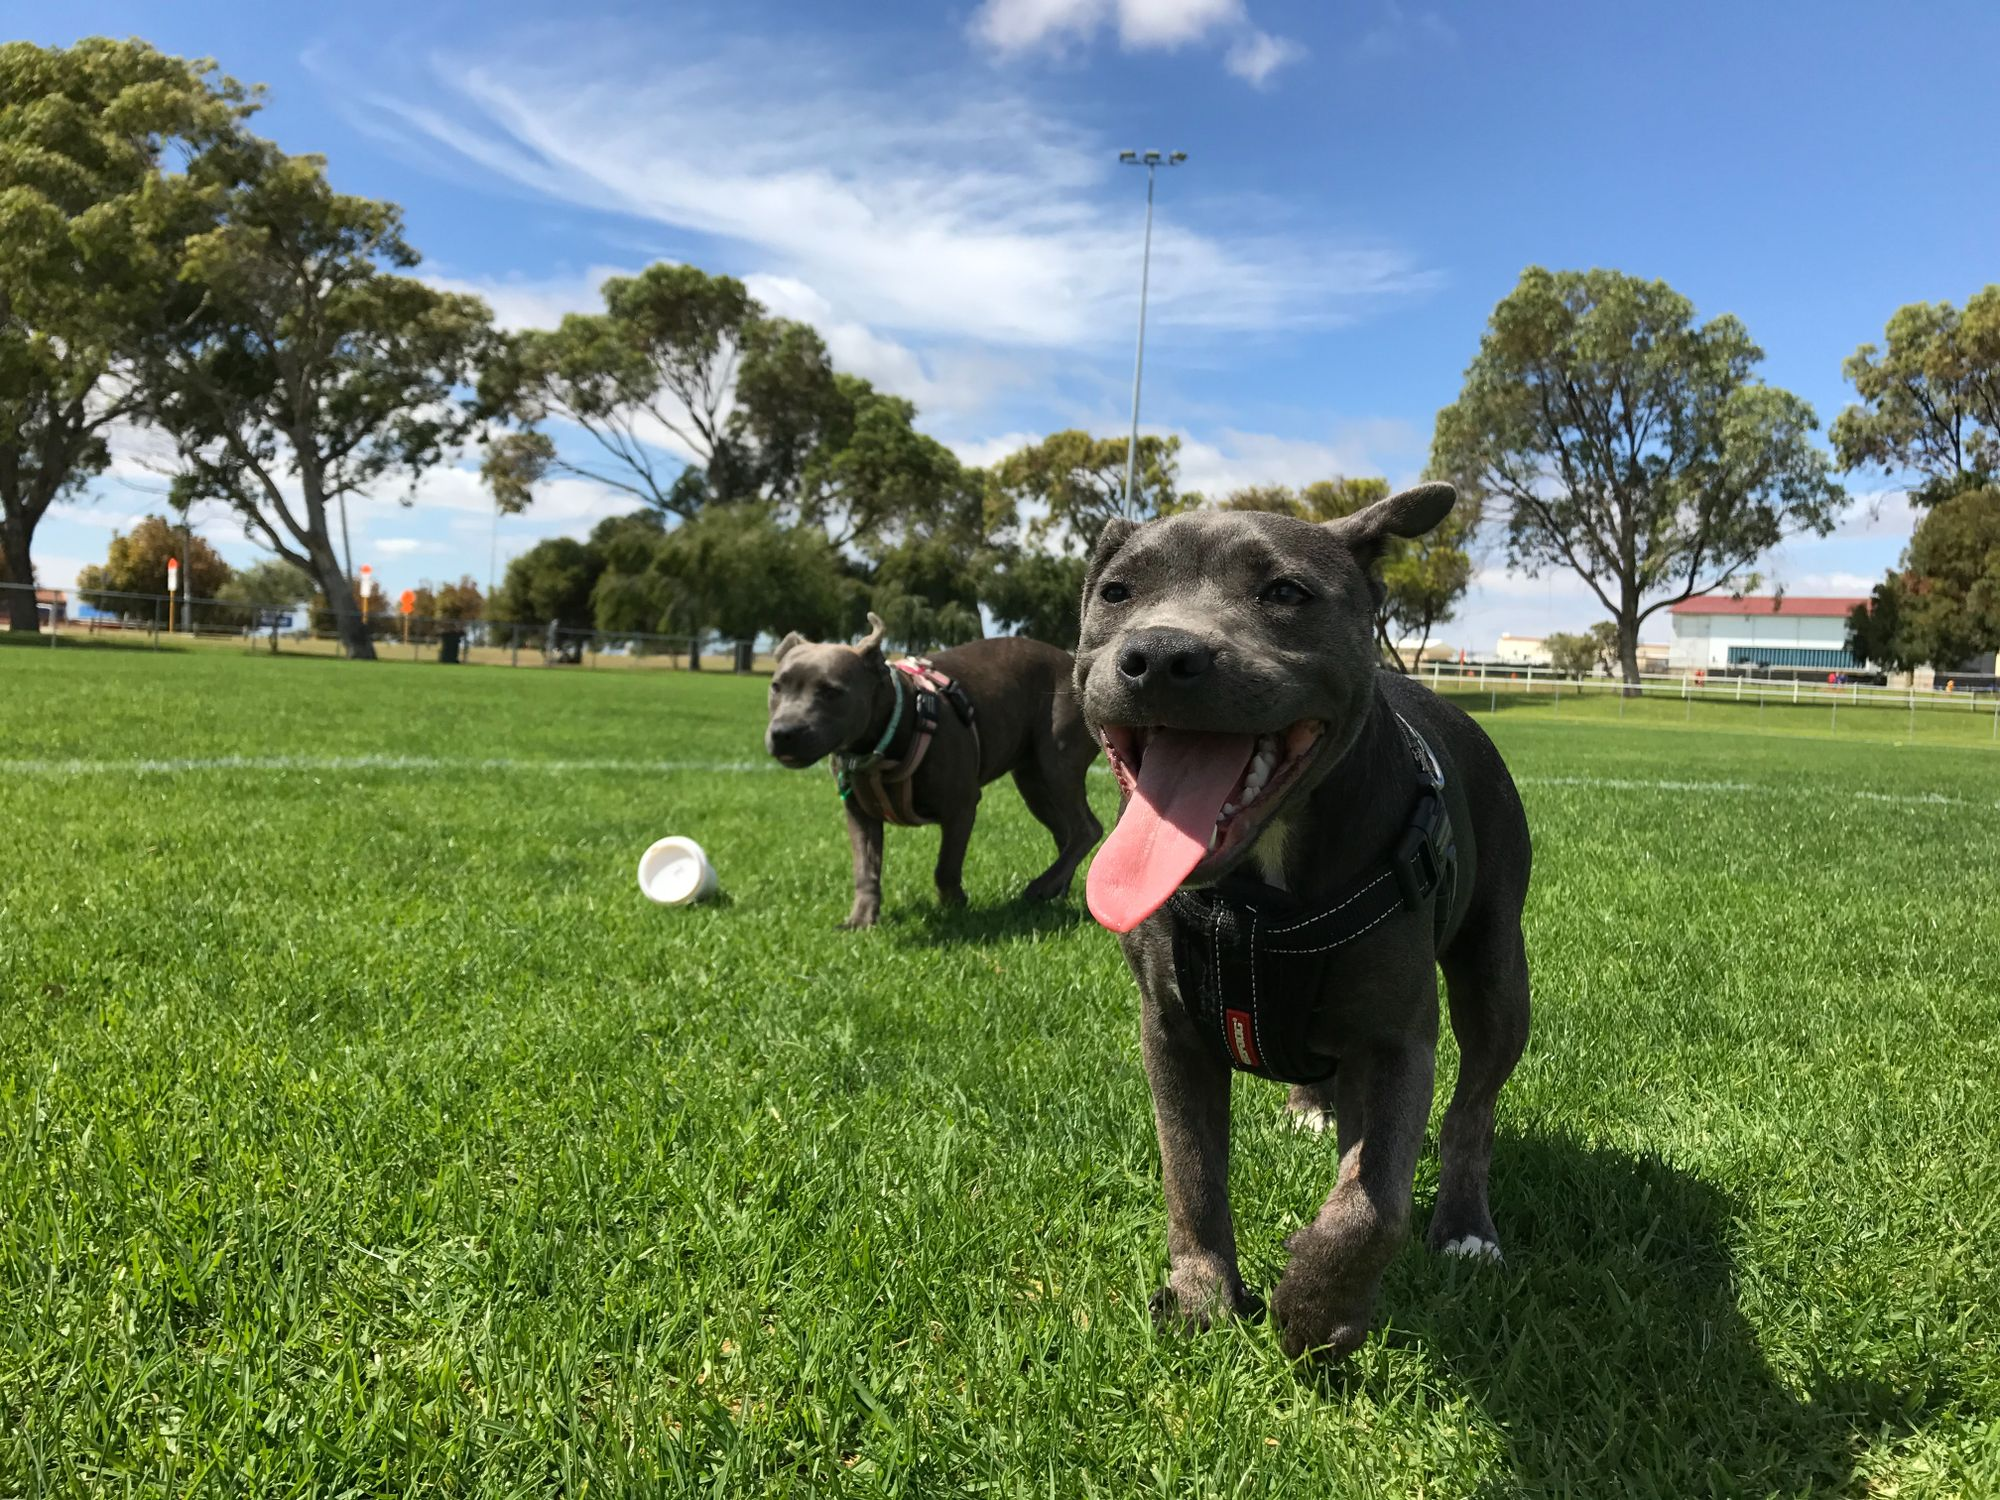 playing-in-the-park-with-dogs-unsplash-source